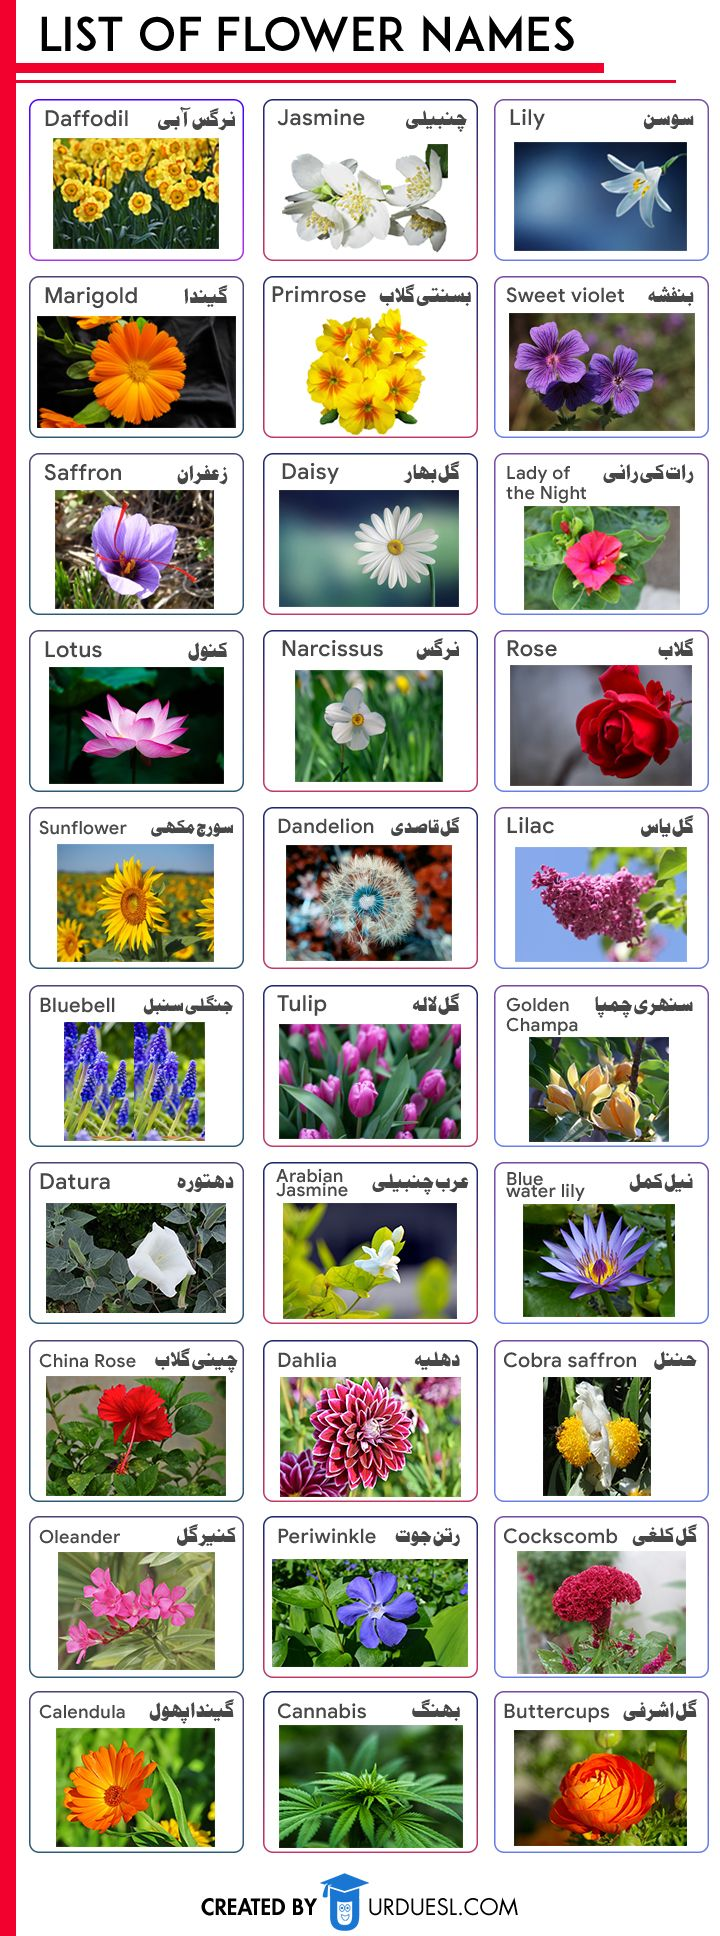 Flower Names In English And Urdu Flowers Name In English Flower Names Indian Flower Names